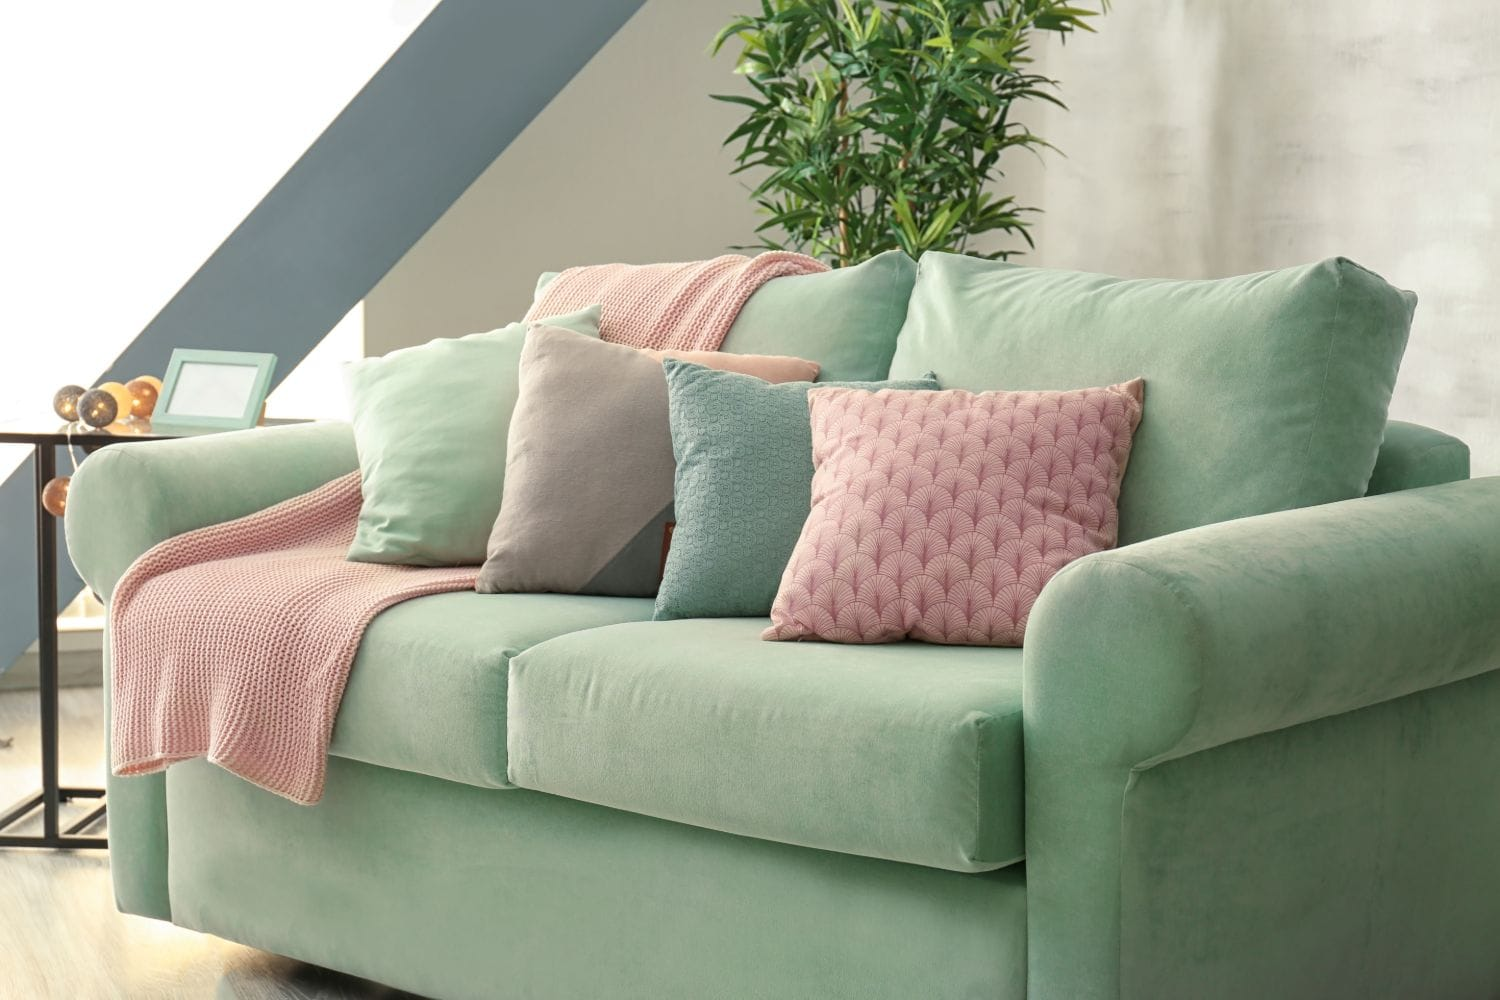 How To Put A Throw On A Couch - SwankyDen.com